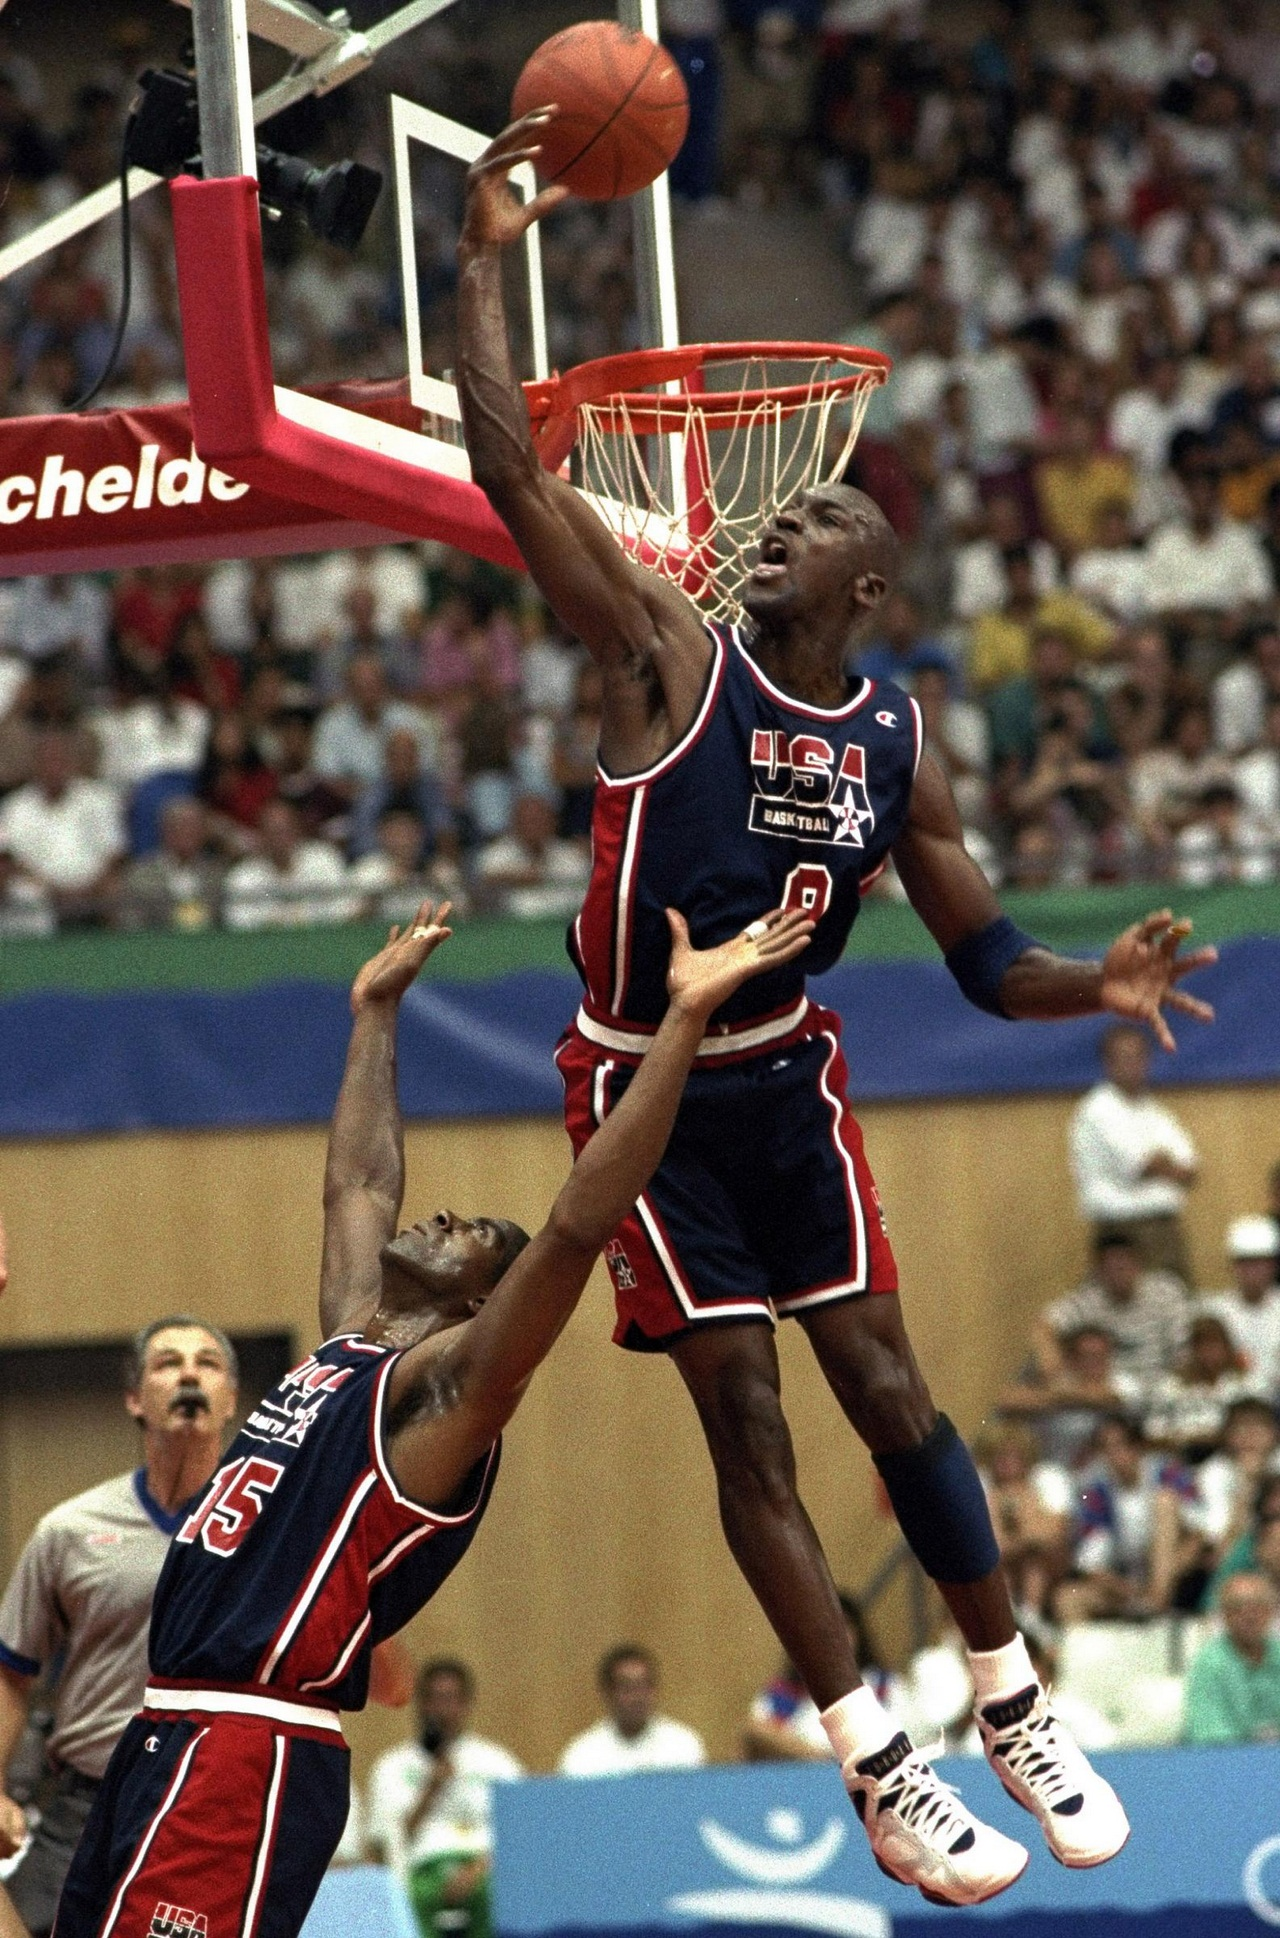 FILE - In this July 27, 1992 file photo, USA's Michael Jordan sails high above teammate Magic Johnson knocking away a shot during the first half of their preliminary round basketball game with Croatia at the Summer Olympics in Barcelona. With USA Basketba